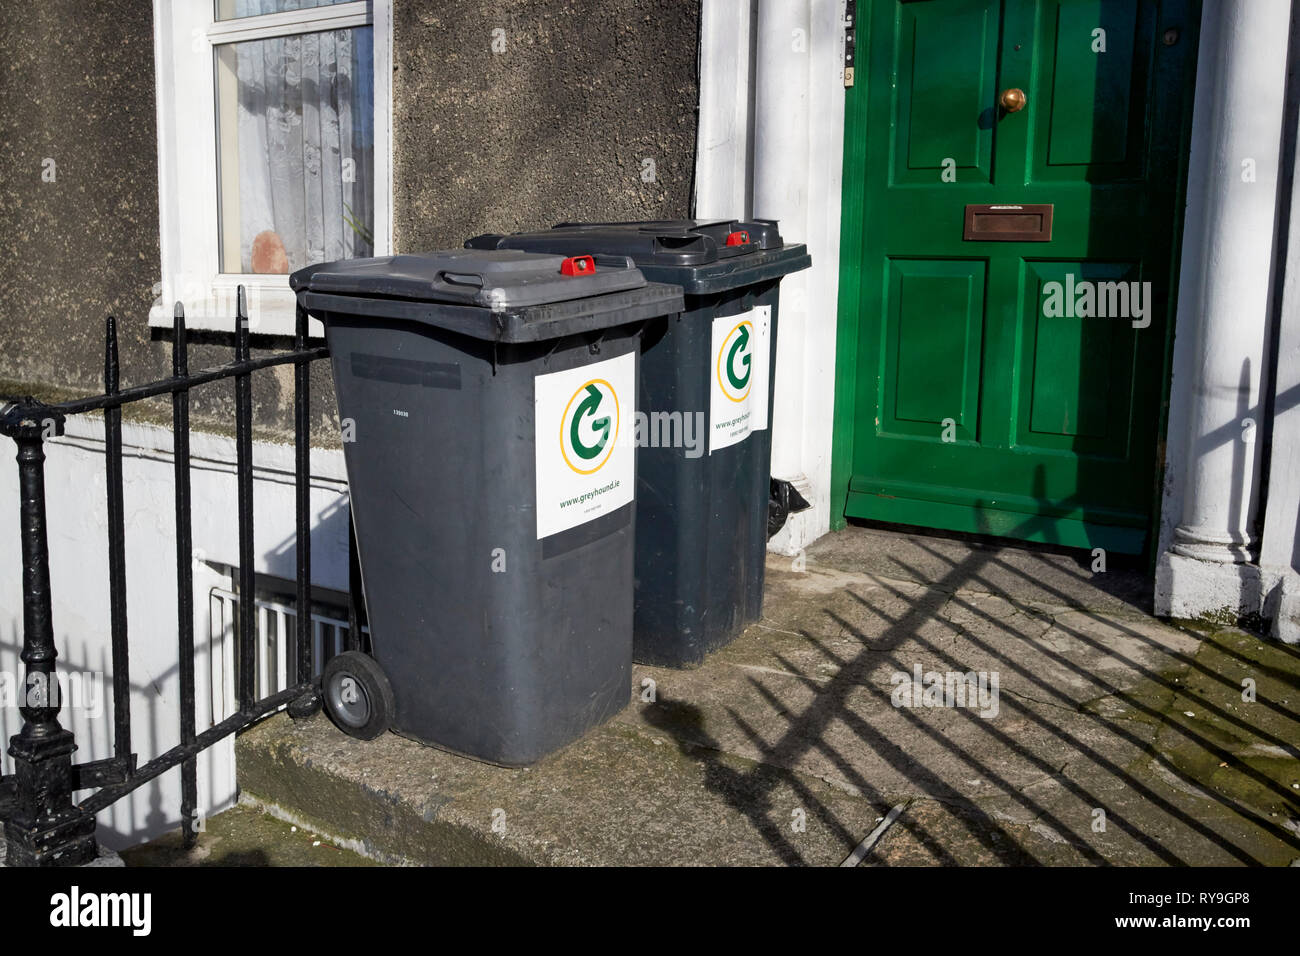 lockable private company wheelie bins outside a georgian house made into flats Dublin Republic of Ireland Europe - Stock Image